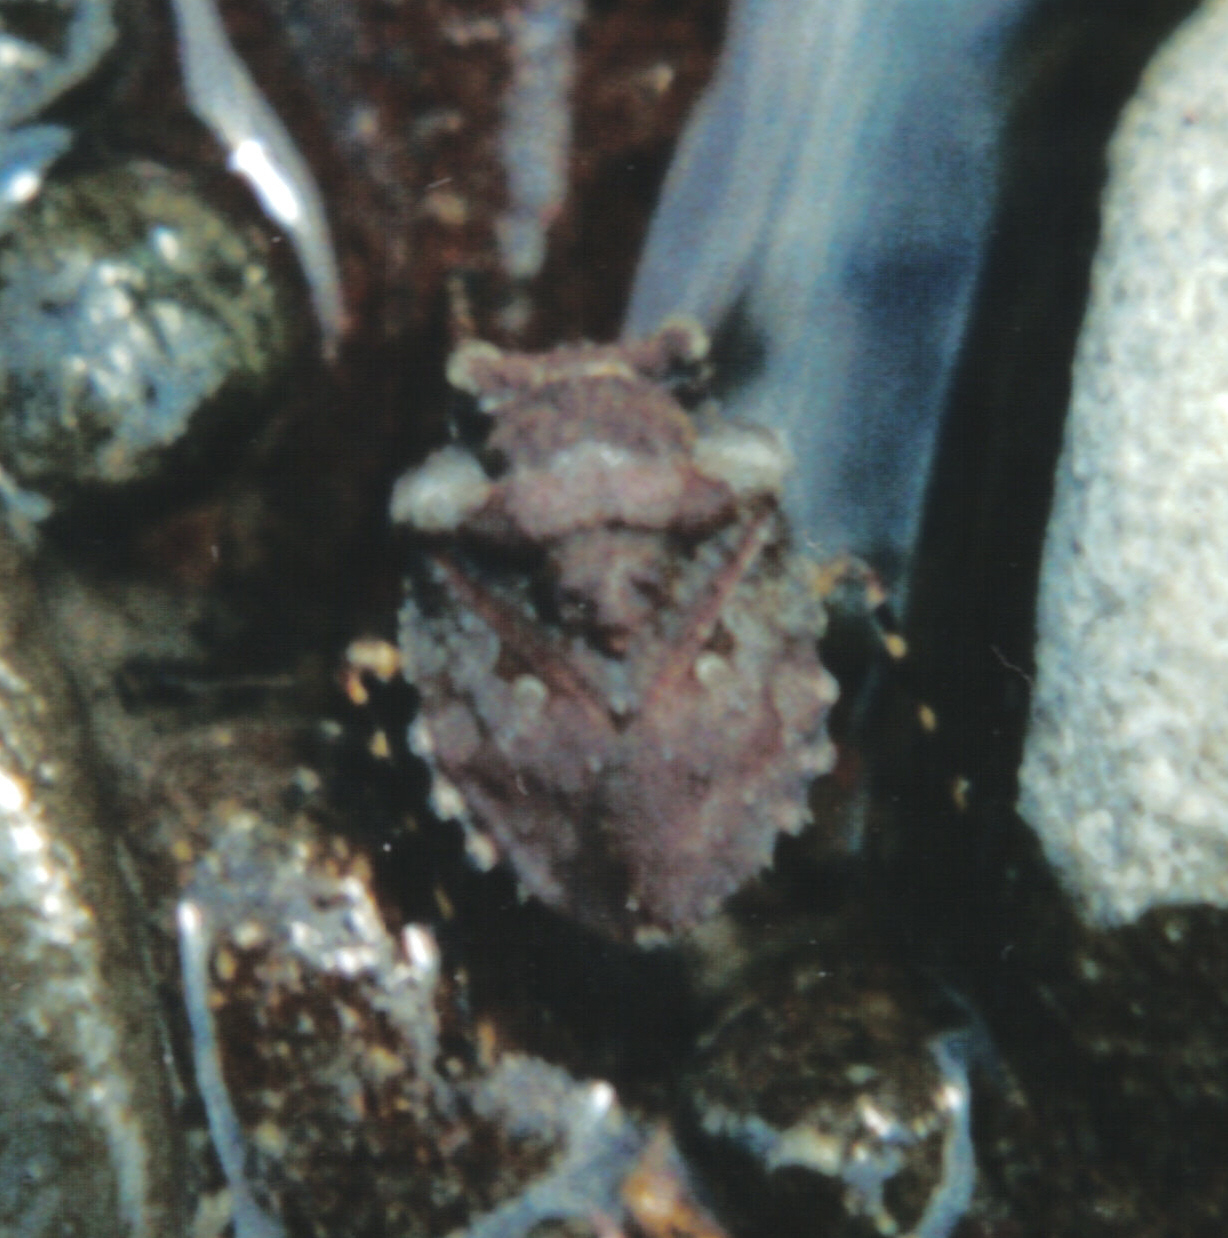 Image of toad bugs